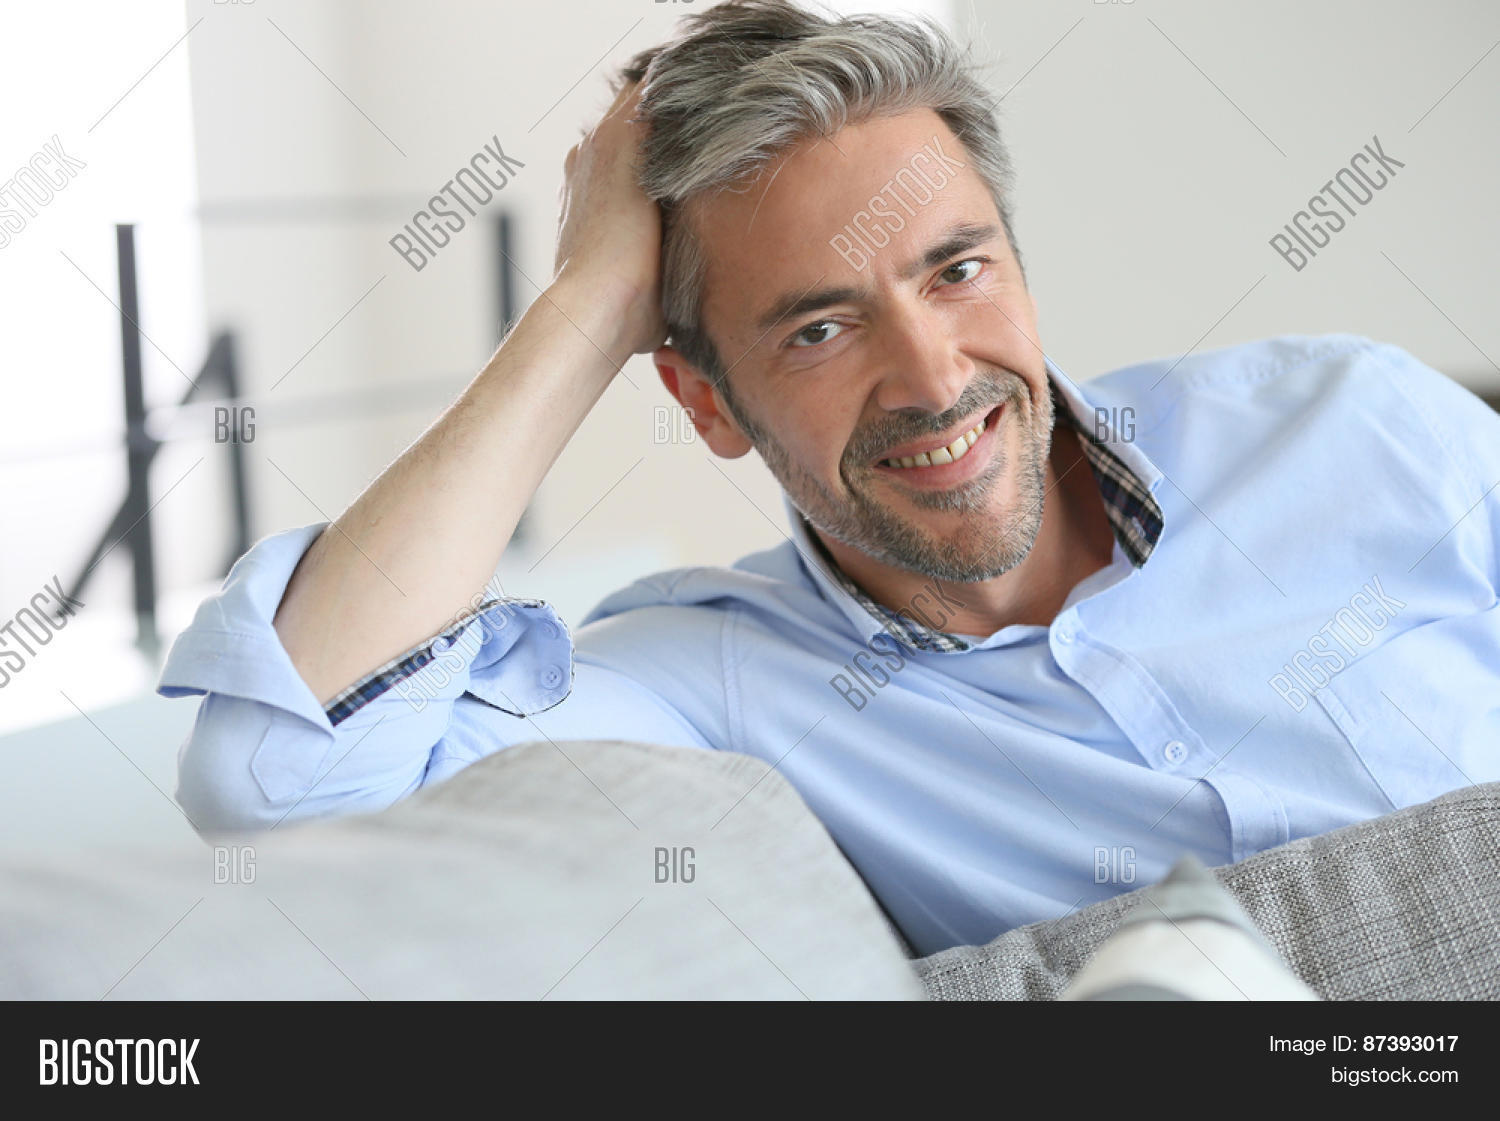 45 year old man dating 50 year old